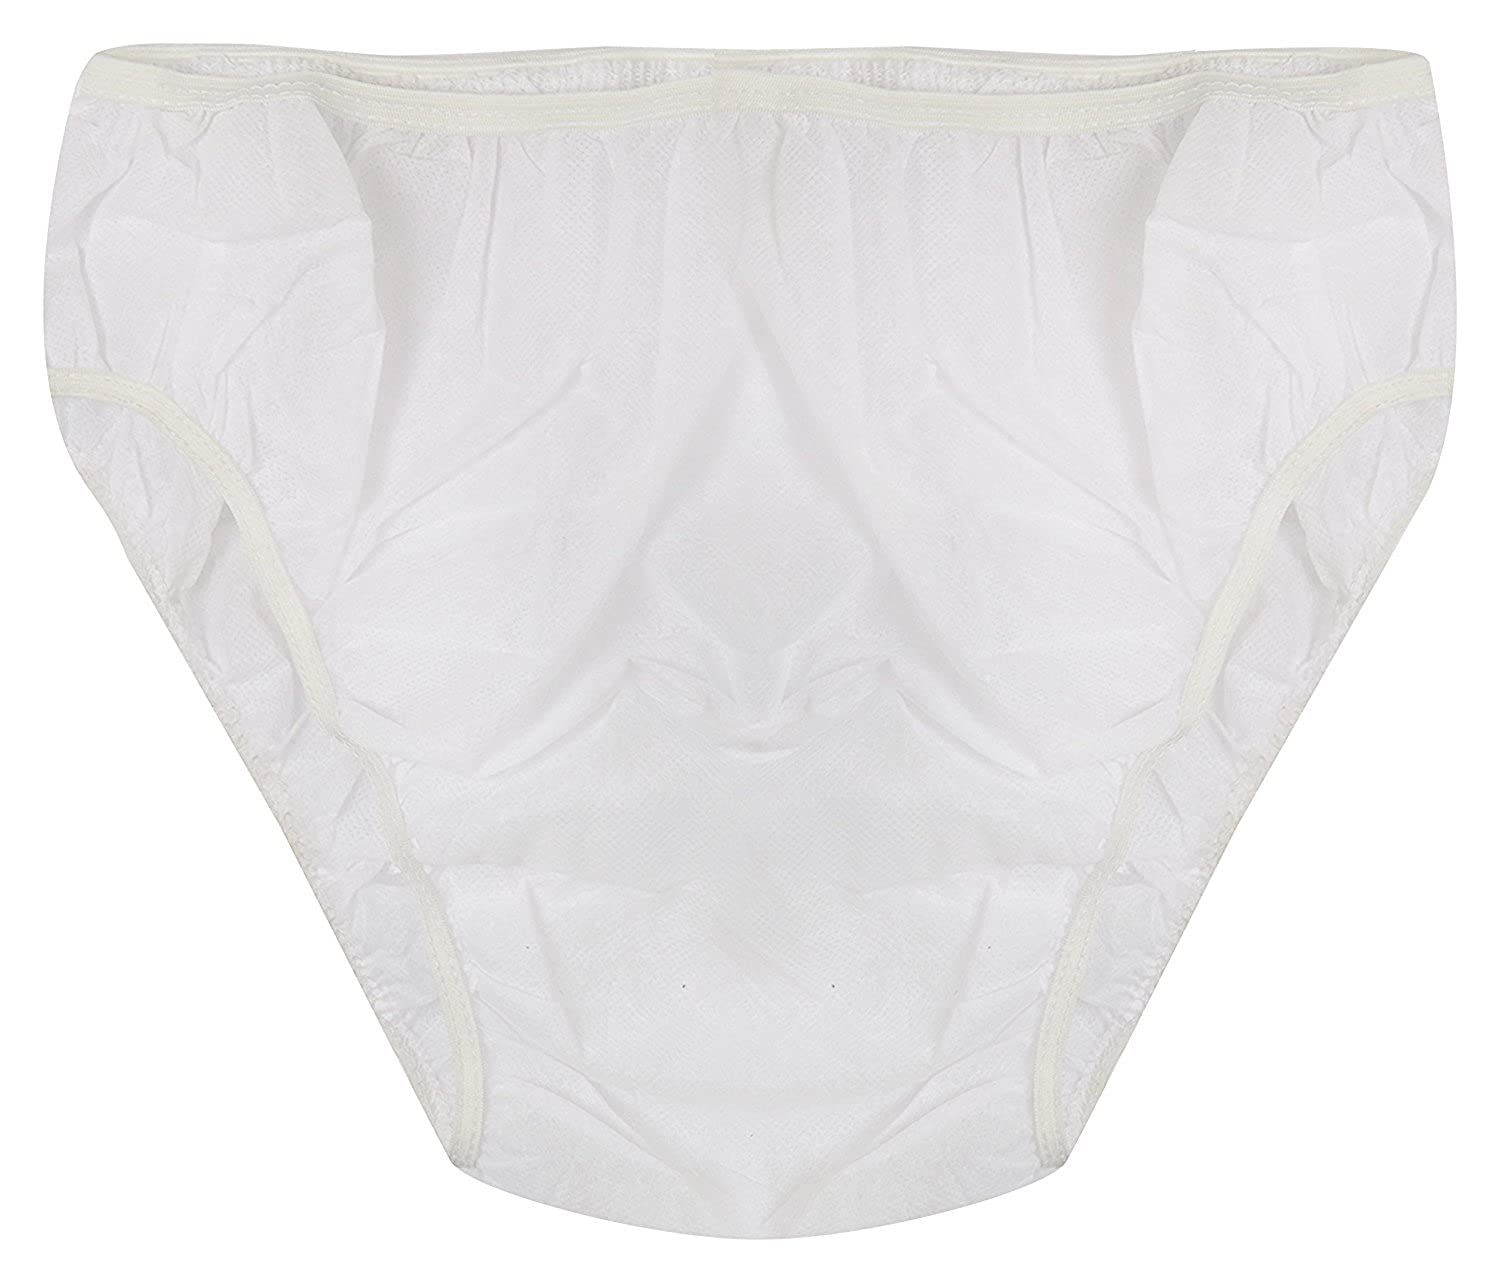 cfe1548cc9e8 ASHWA GROUP Non Woven White Disposable Women 2-Ply Panty - Pack of 20  Panties: Amazon.in: Clothing & Accessories